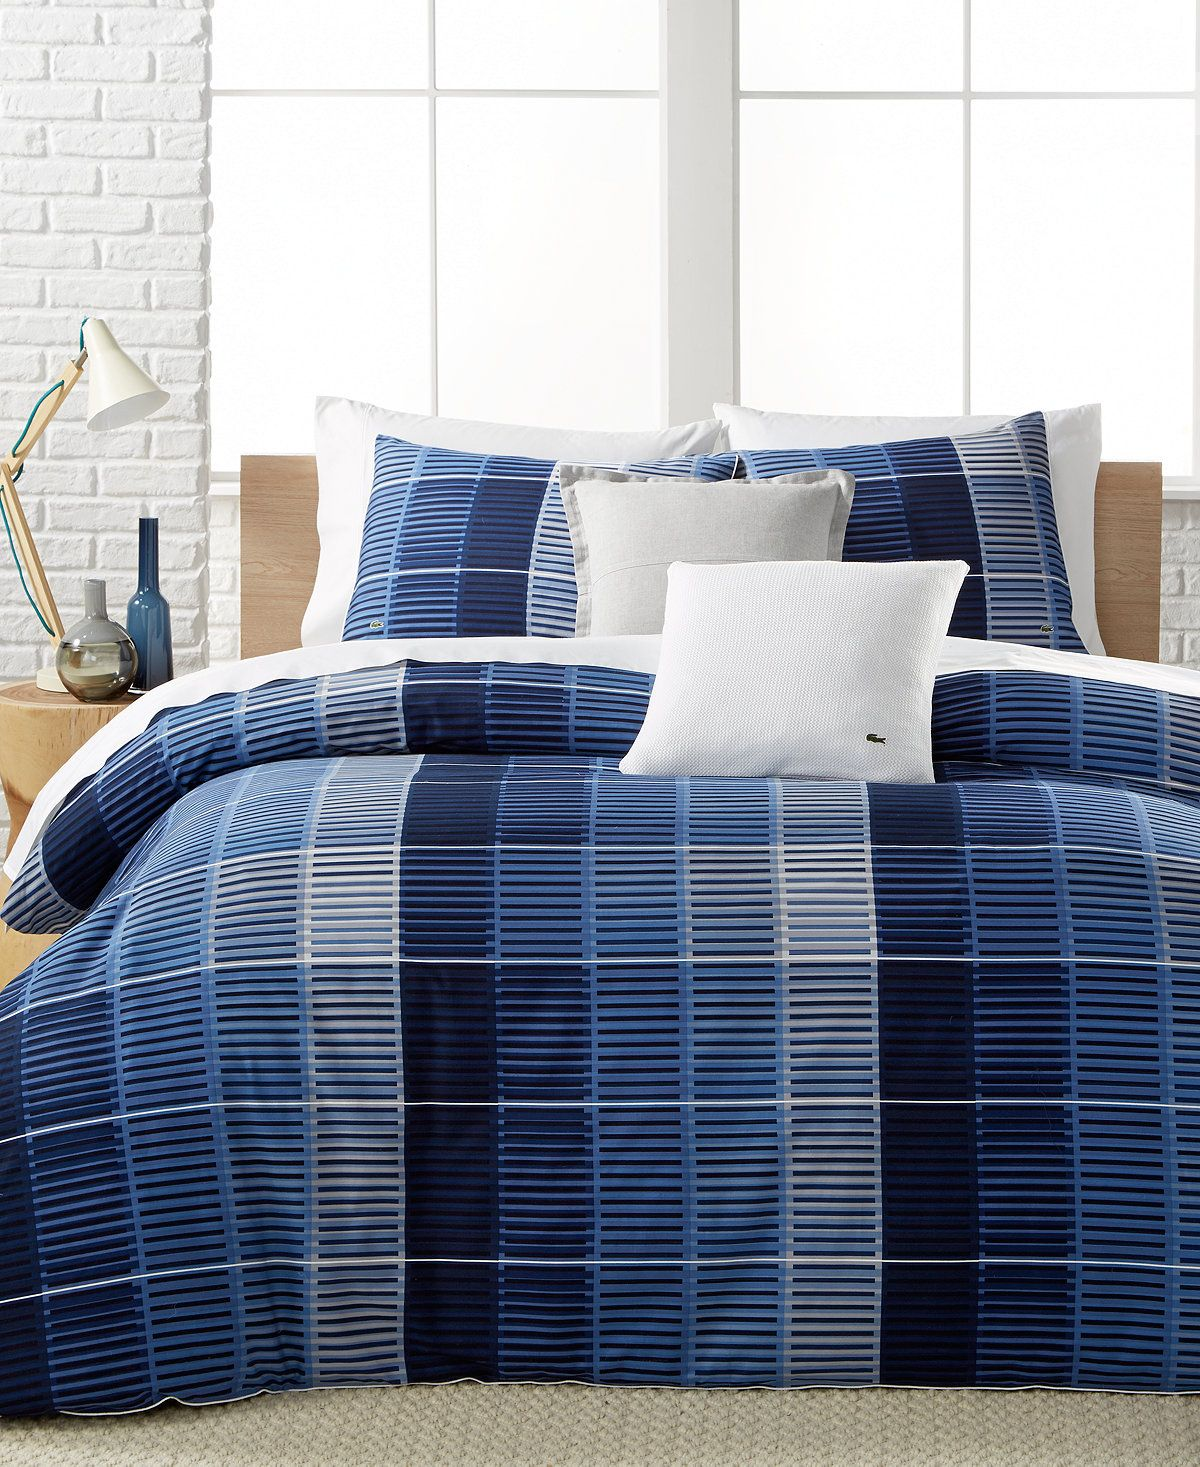 Lacoste Home Blue Albe Twin/Twin XL Comforter Set. A Macy